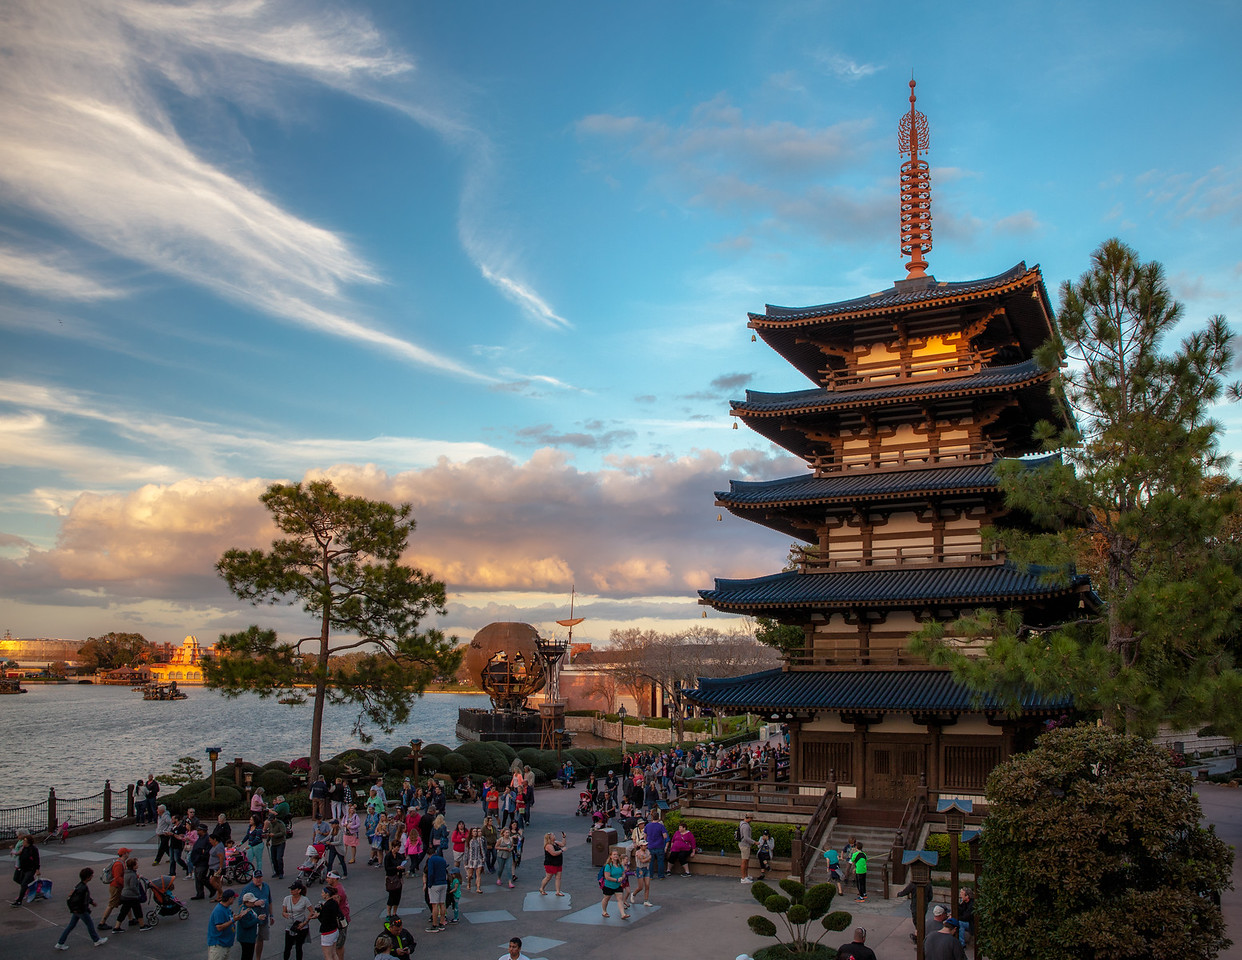 Japan at Epcot Center